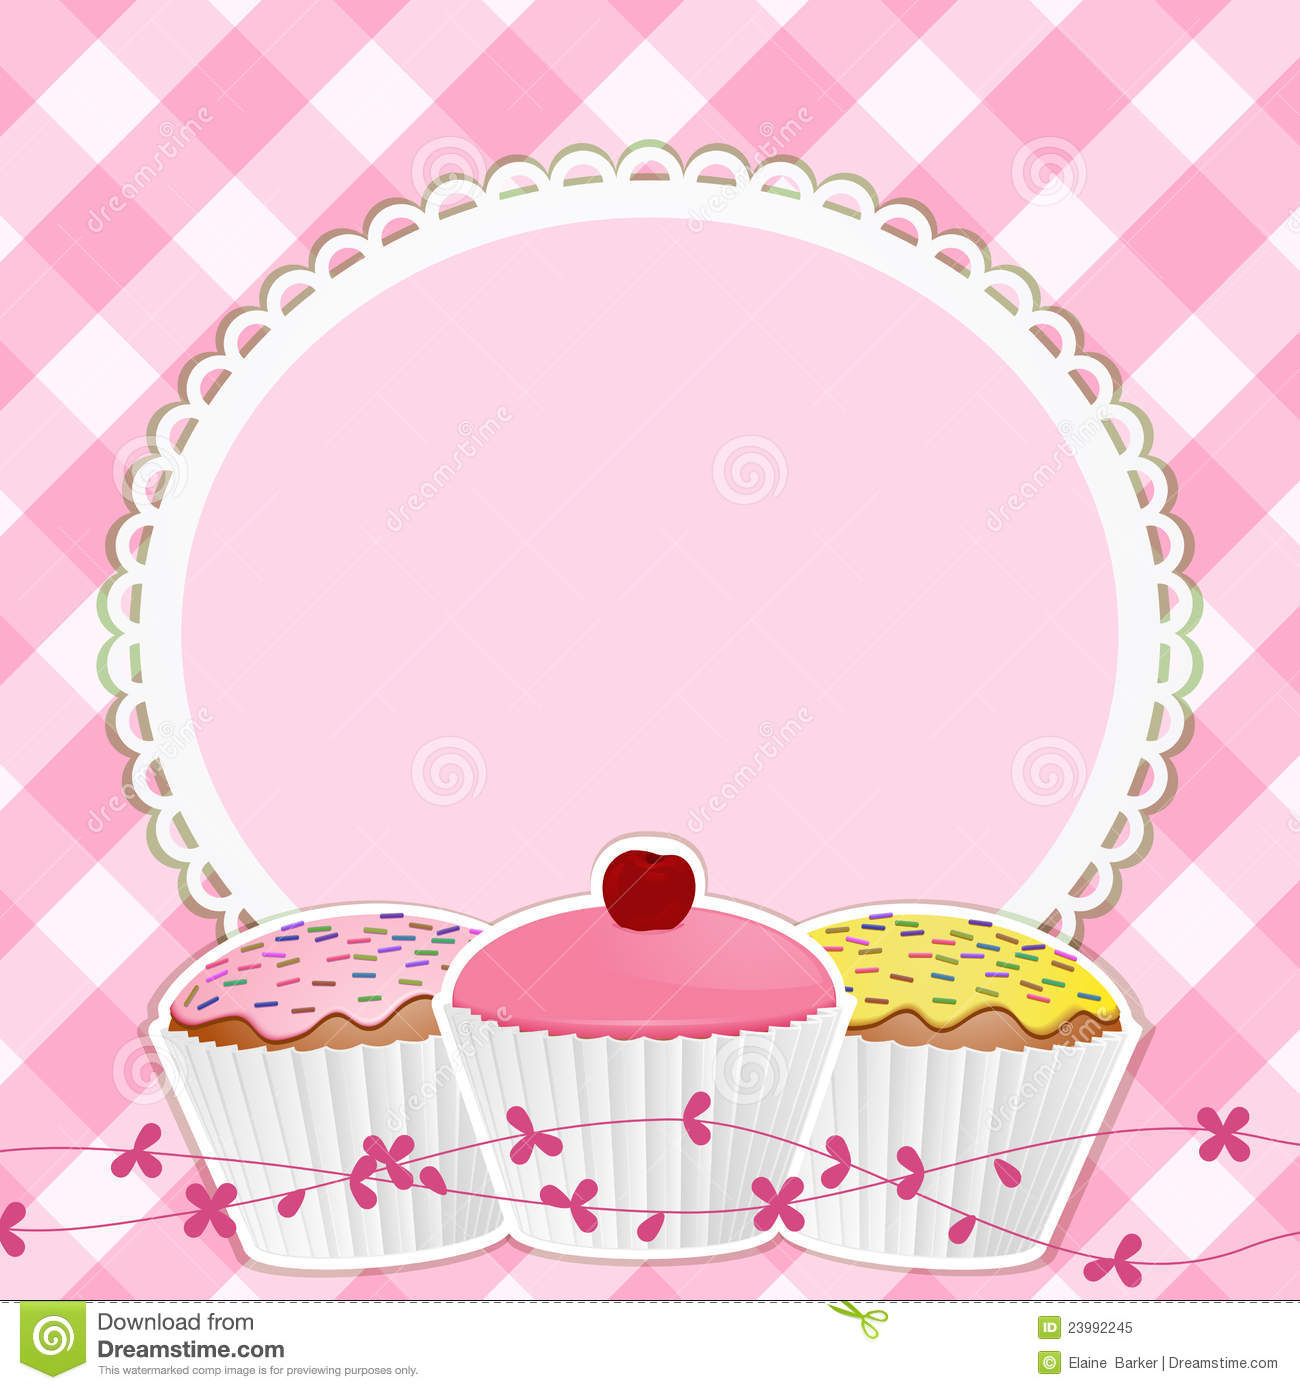 Vanilla Cupcake clipart border Pink Ice Pin pink Find